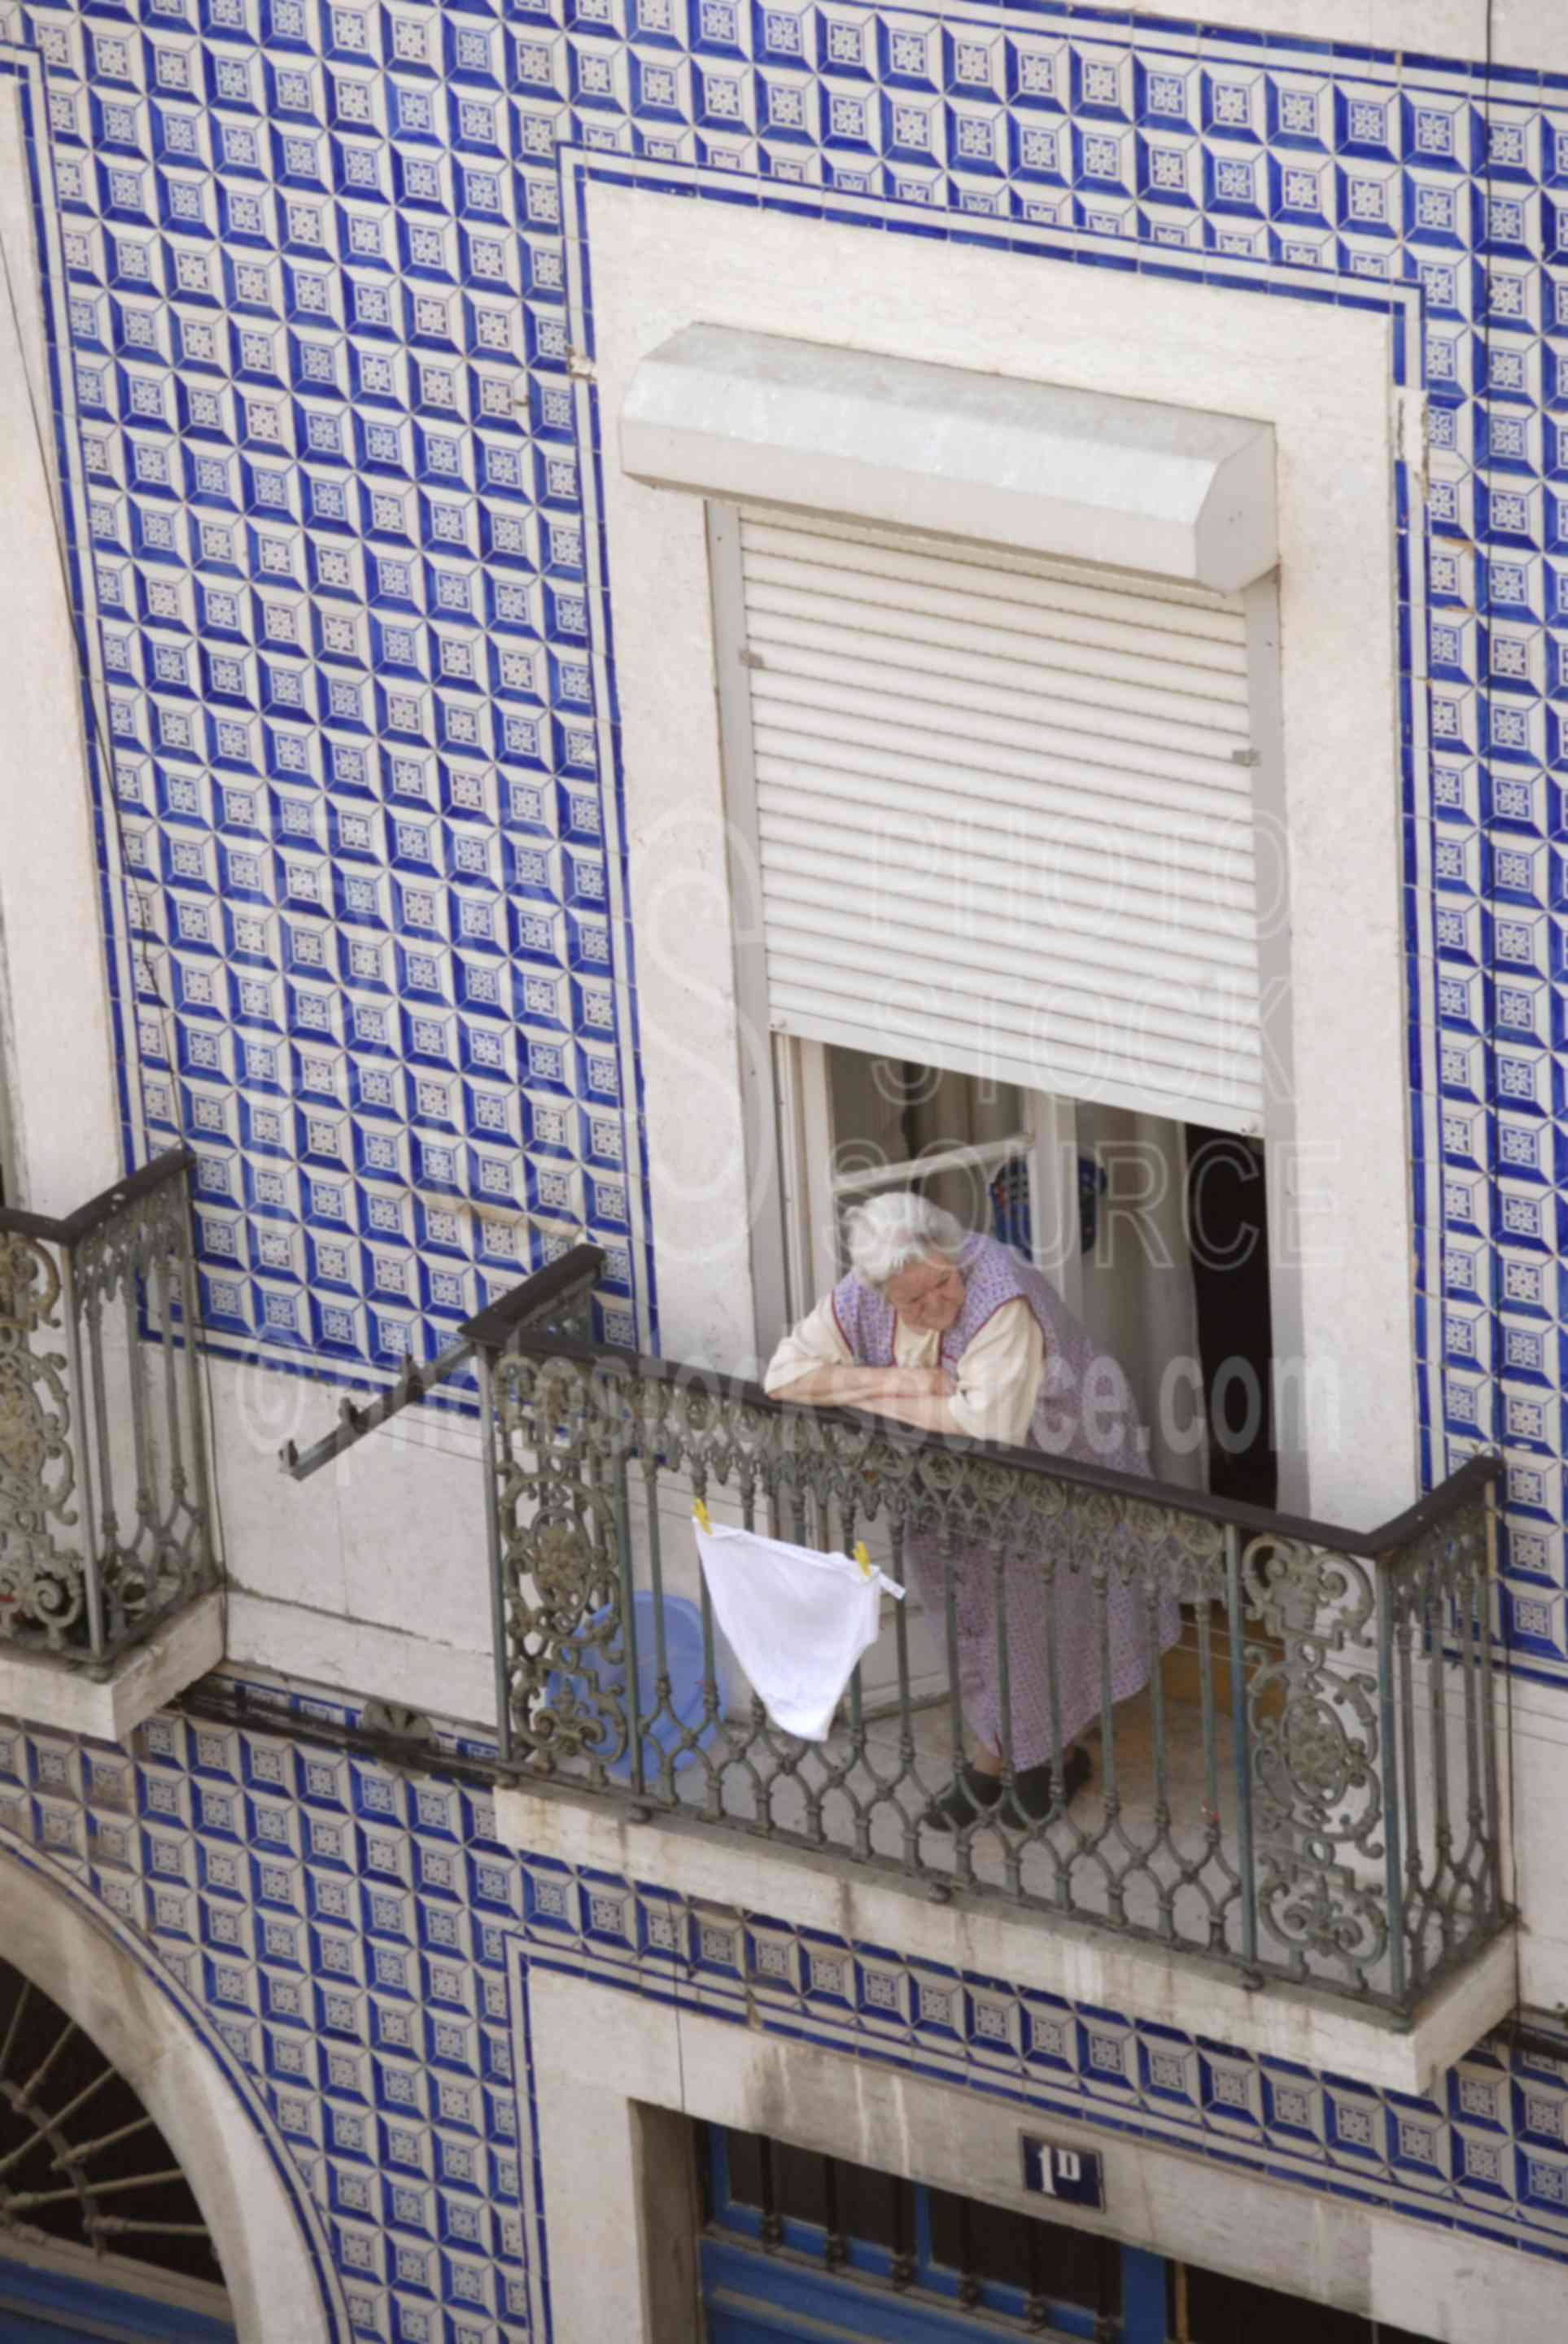 Drying Underwear,house,tile,woman,architecture,underwear,underpants